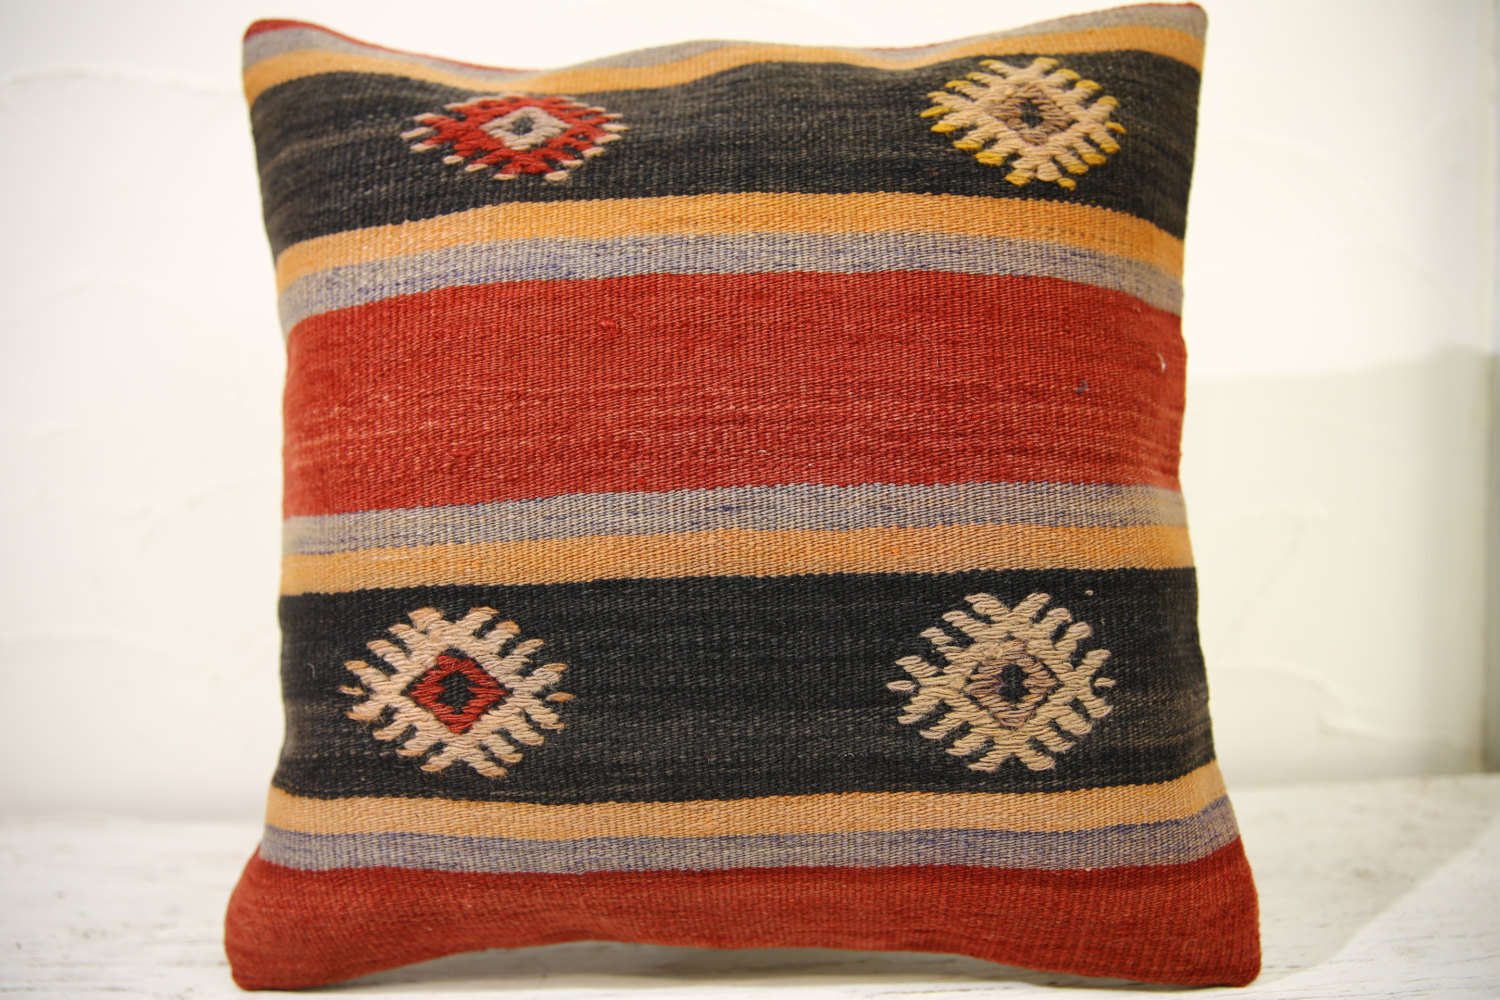 Kilim Pillows | 16x16 | Decorative Pillows | 938 | Accent Pillows,turkish pillow